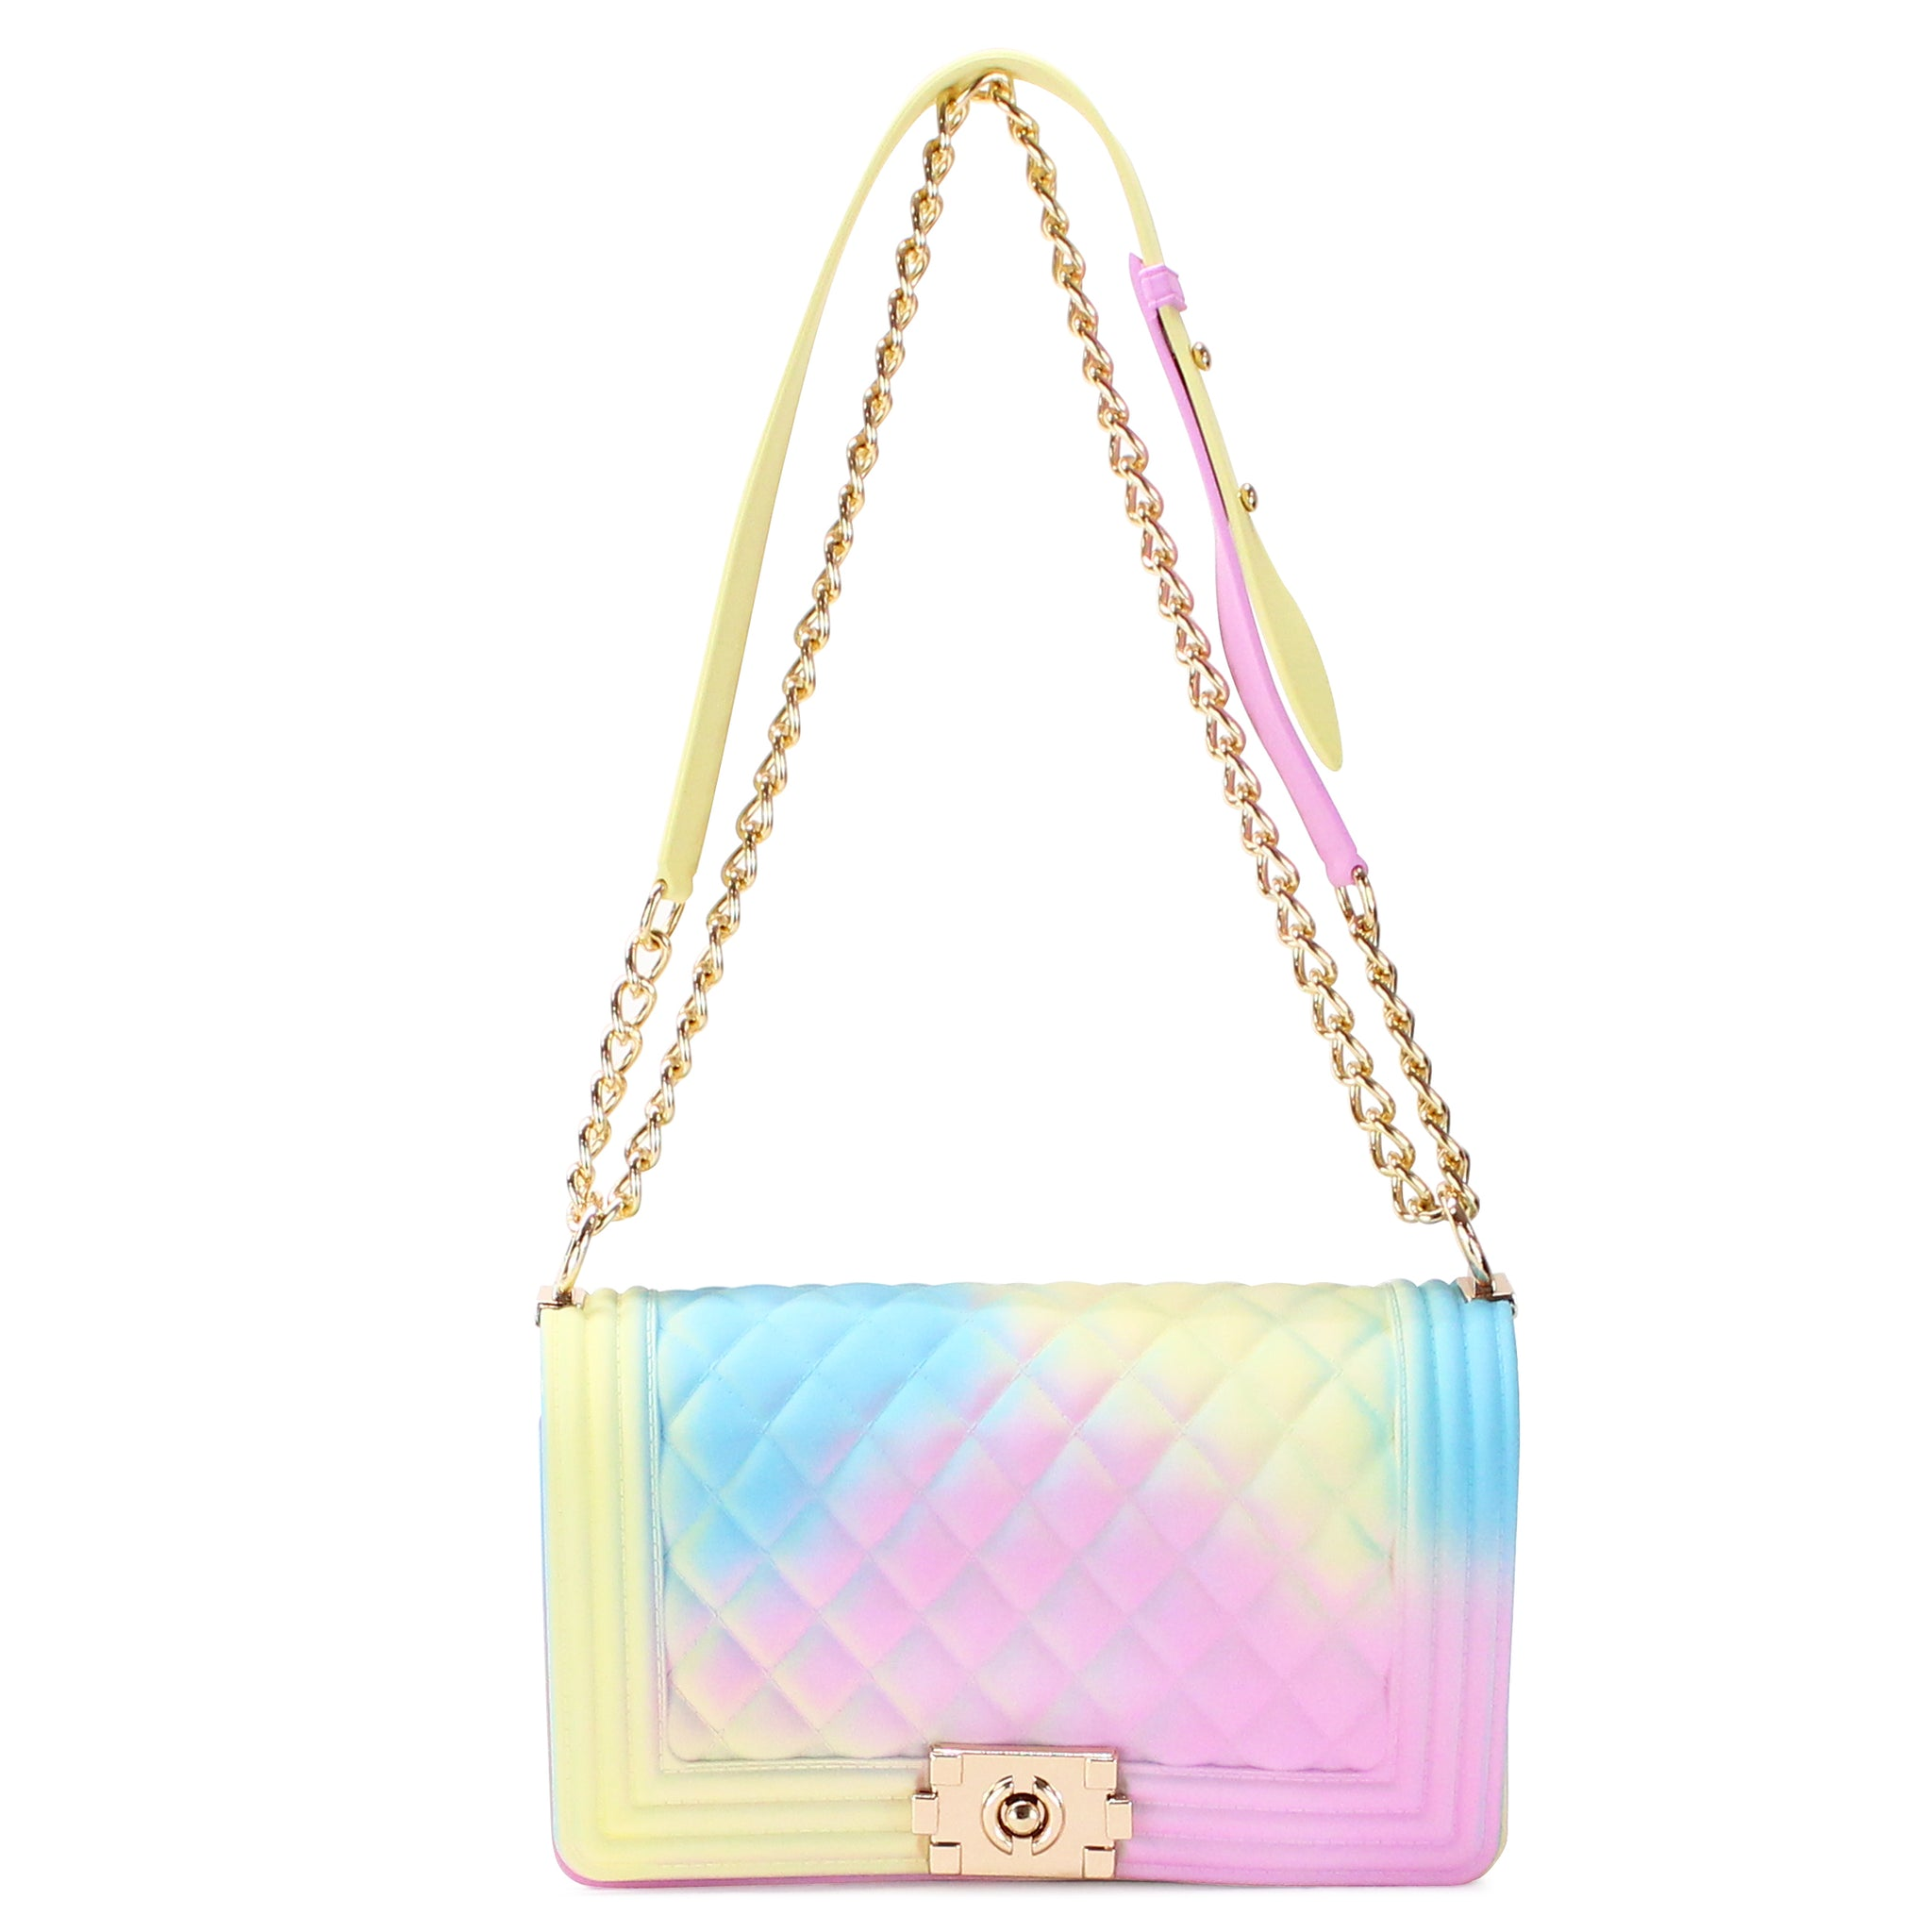 QUILTED COTTON CANDY SILICONE SHOULDER BAG - Jenuine Handbags